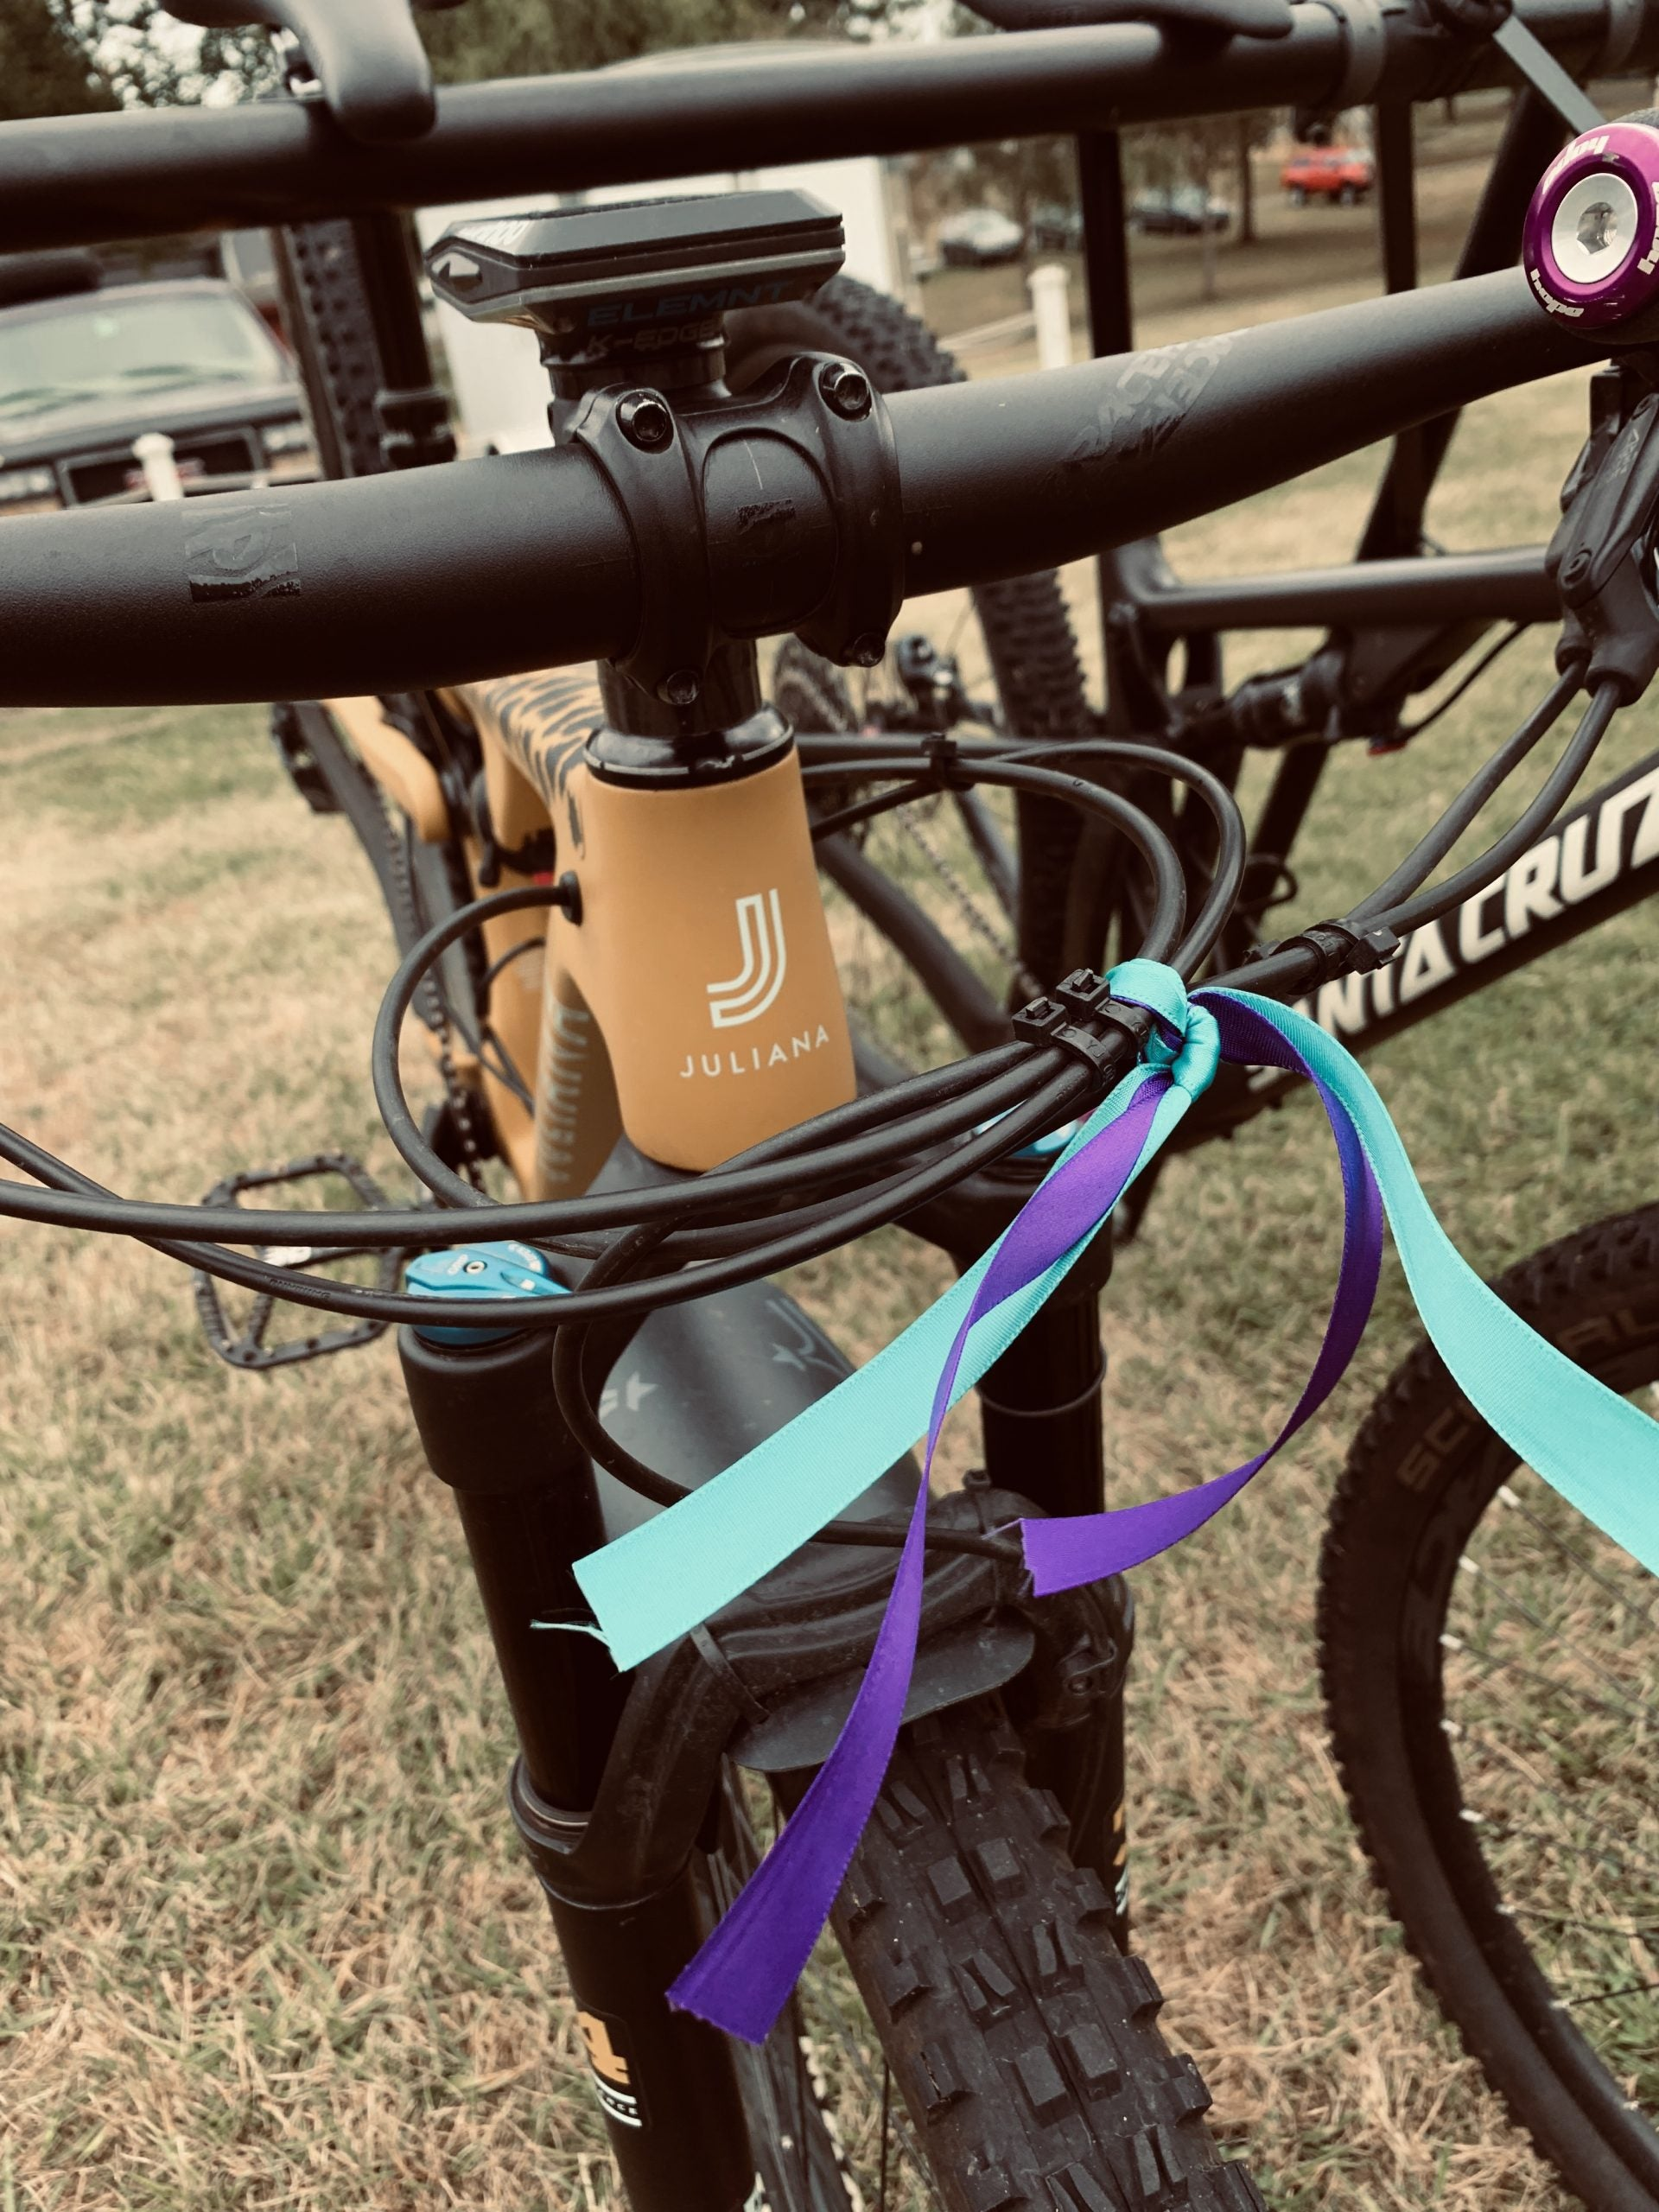 Riding For Something Greater Than Ourselves - Bike With Ribbons